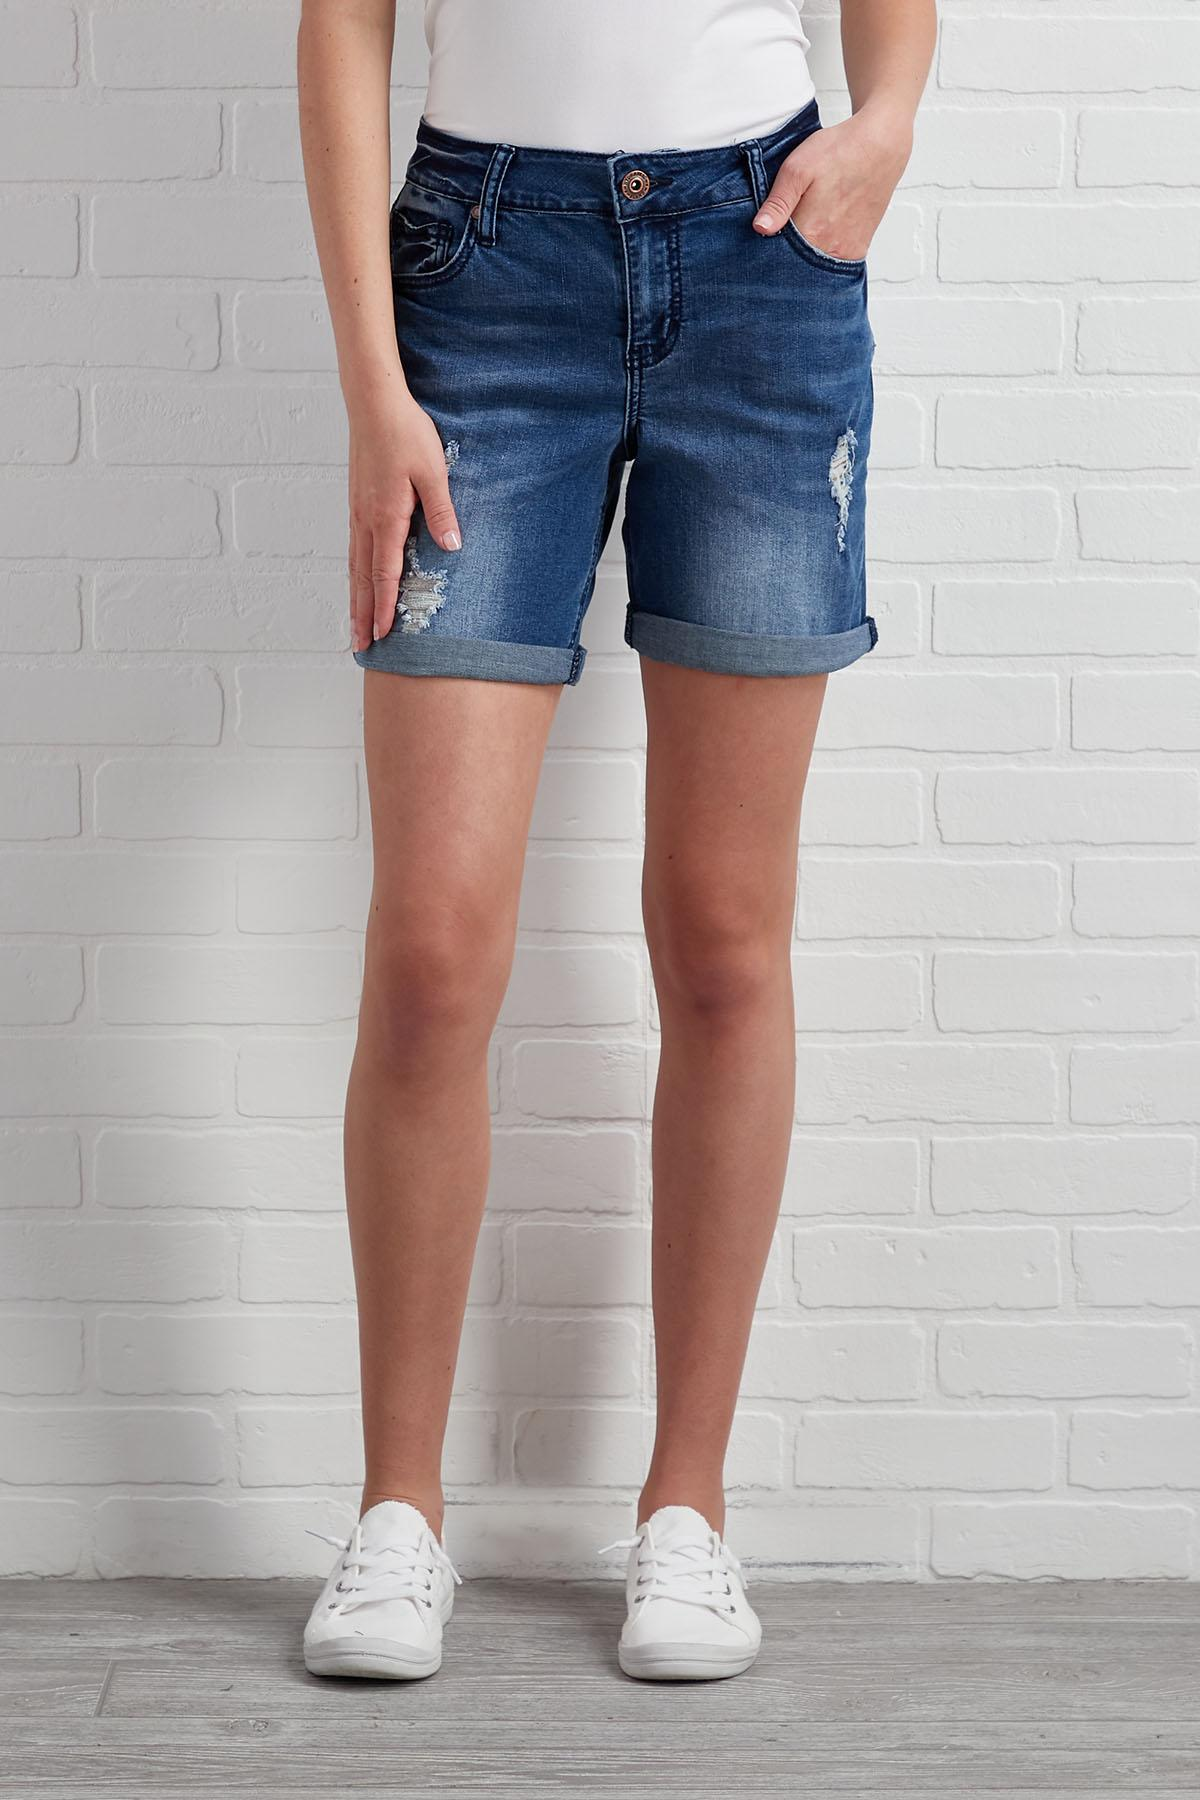 Do You Love Me Denim Shorts